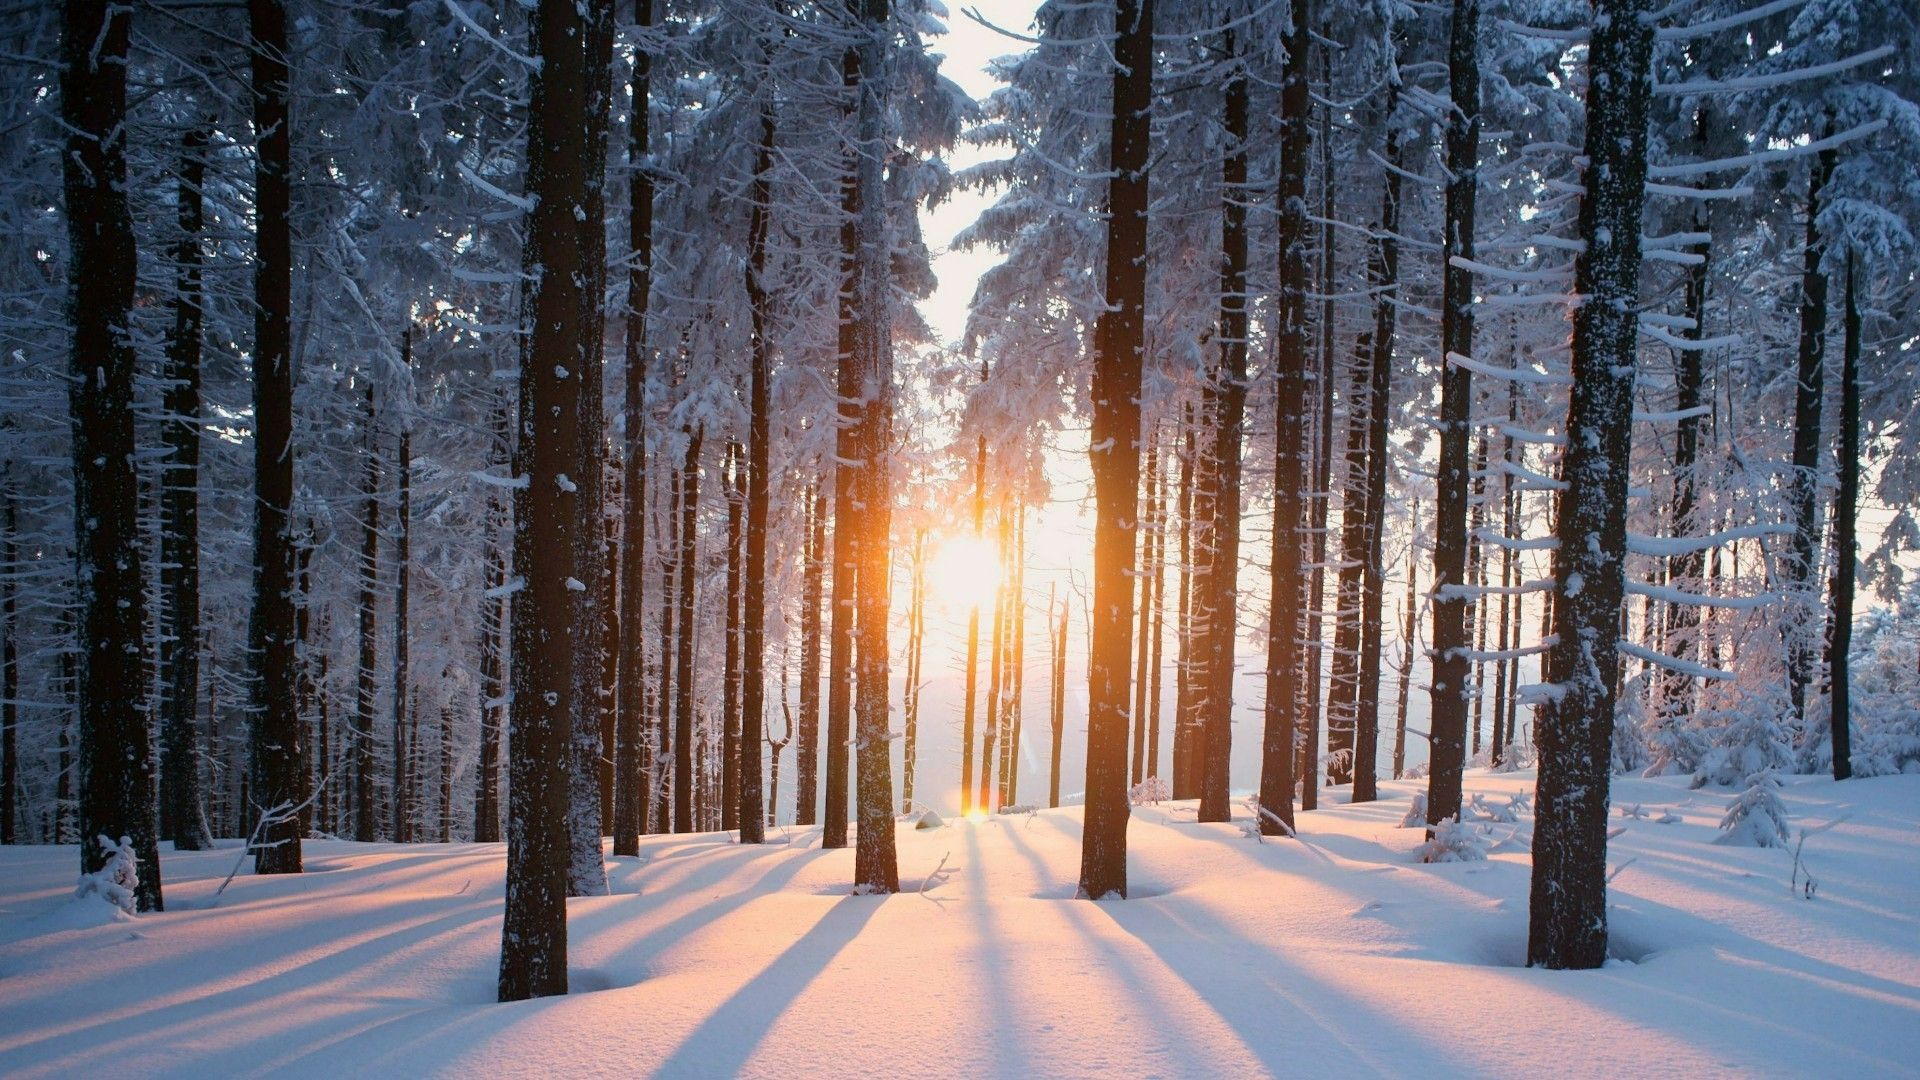 Snowy Forest Wallpapers Top Free Snowy Forest Backgrounds